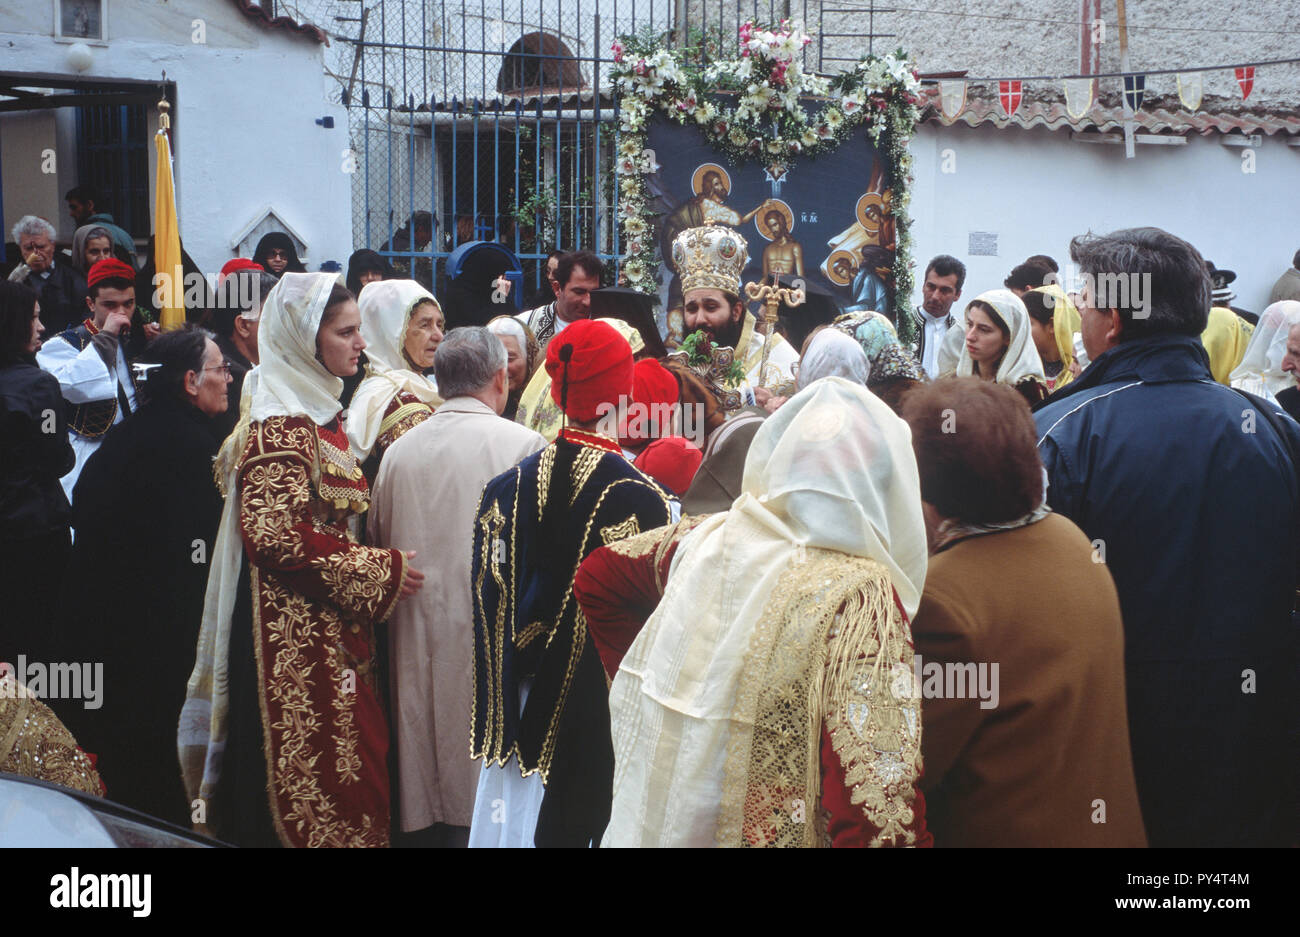 Bishop blesses the faithful during Epiphany at Piraeus, Greece. The Bishop belongs to the 'Old Church' that still uses the Julian calendar. - Stock Image